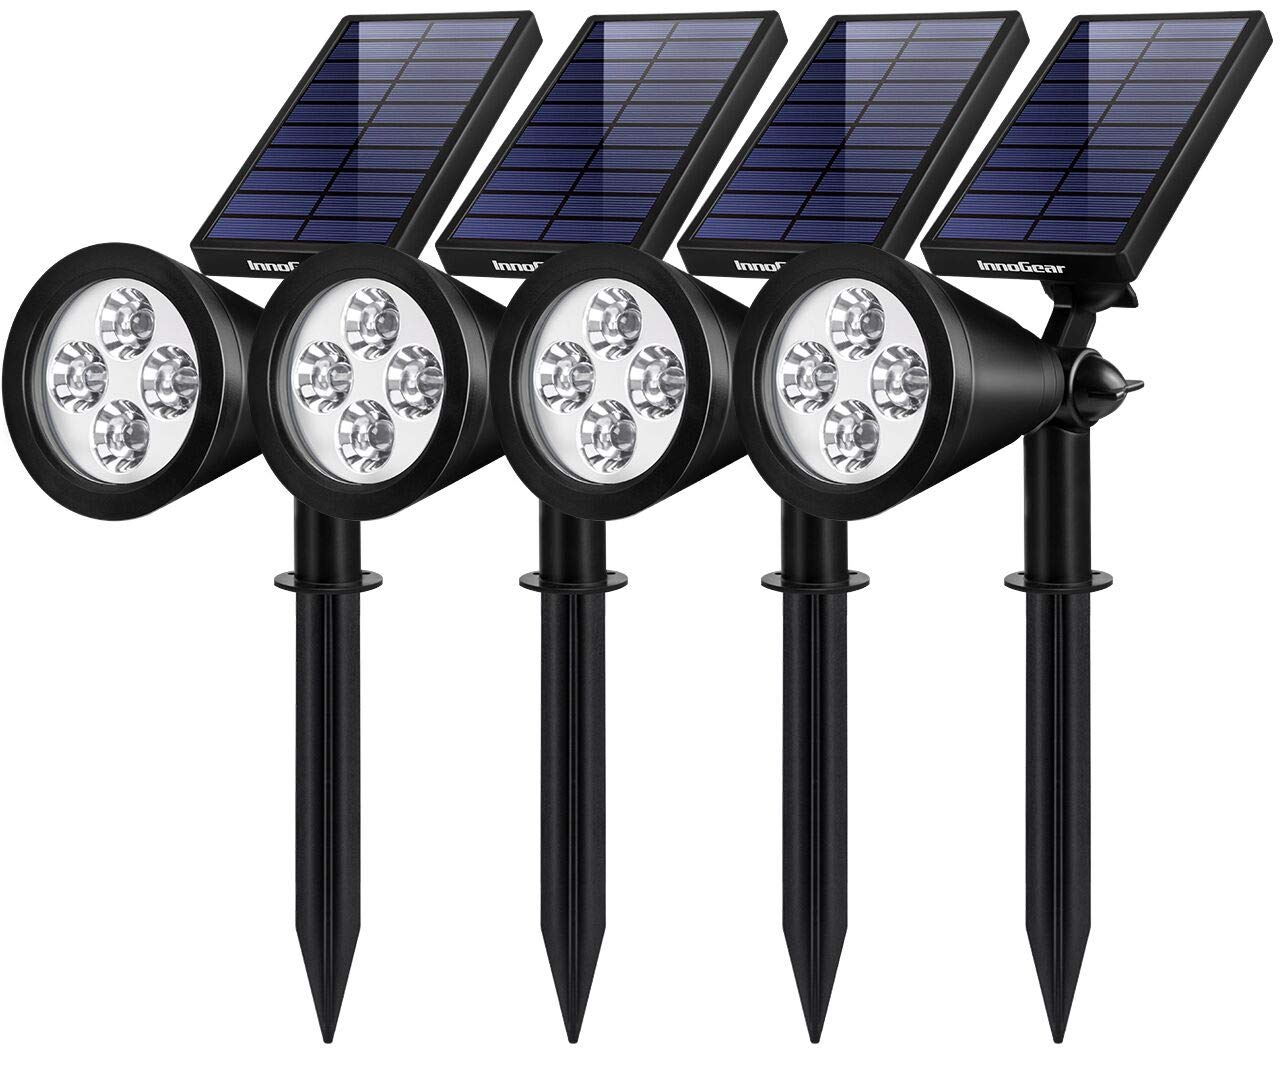 InnoGear Solar Lights – Waterproof Outdoor Landscape Lights